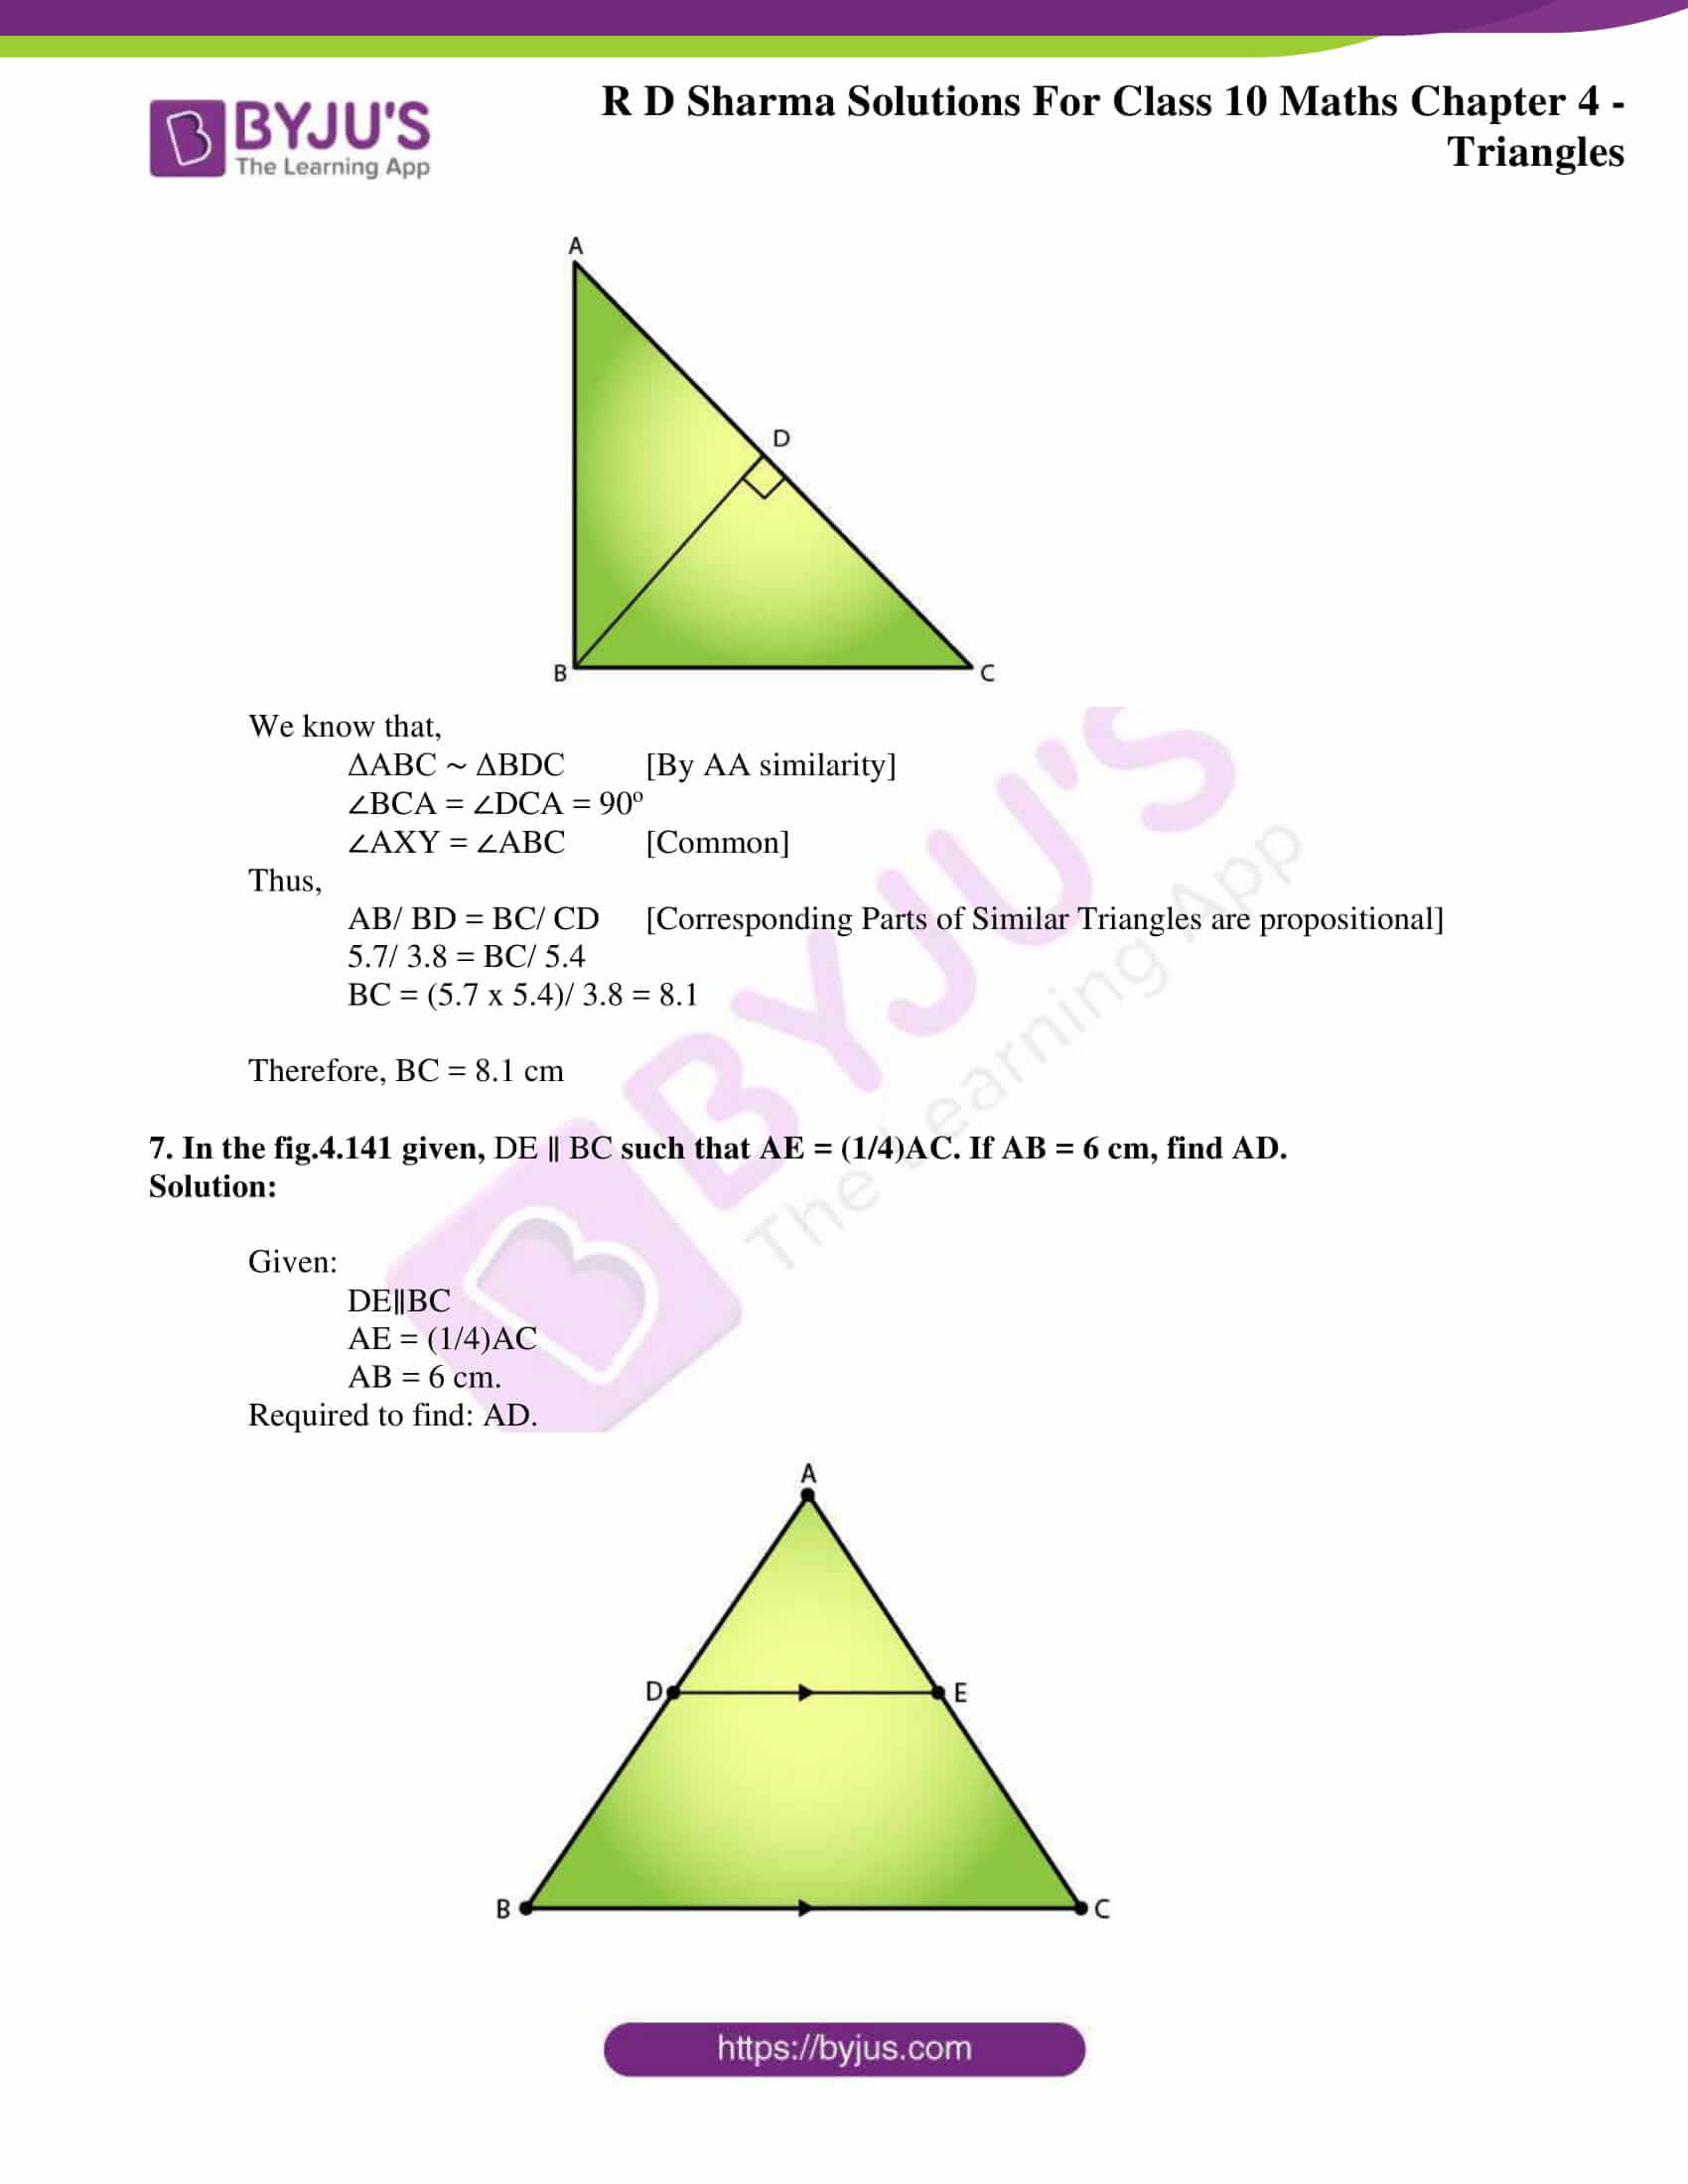 rd sharma solutions for class 10 chapter 4 ex 4.5